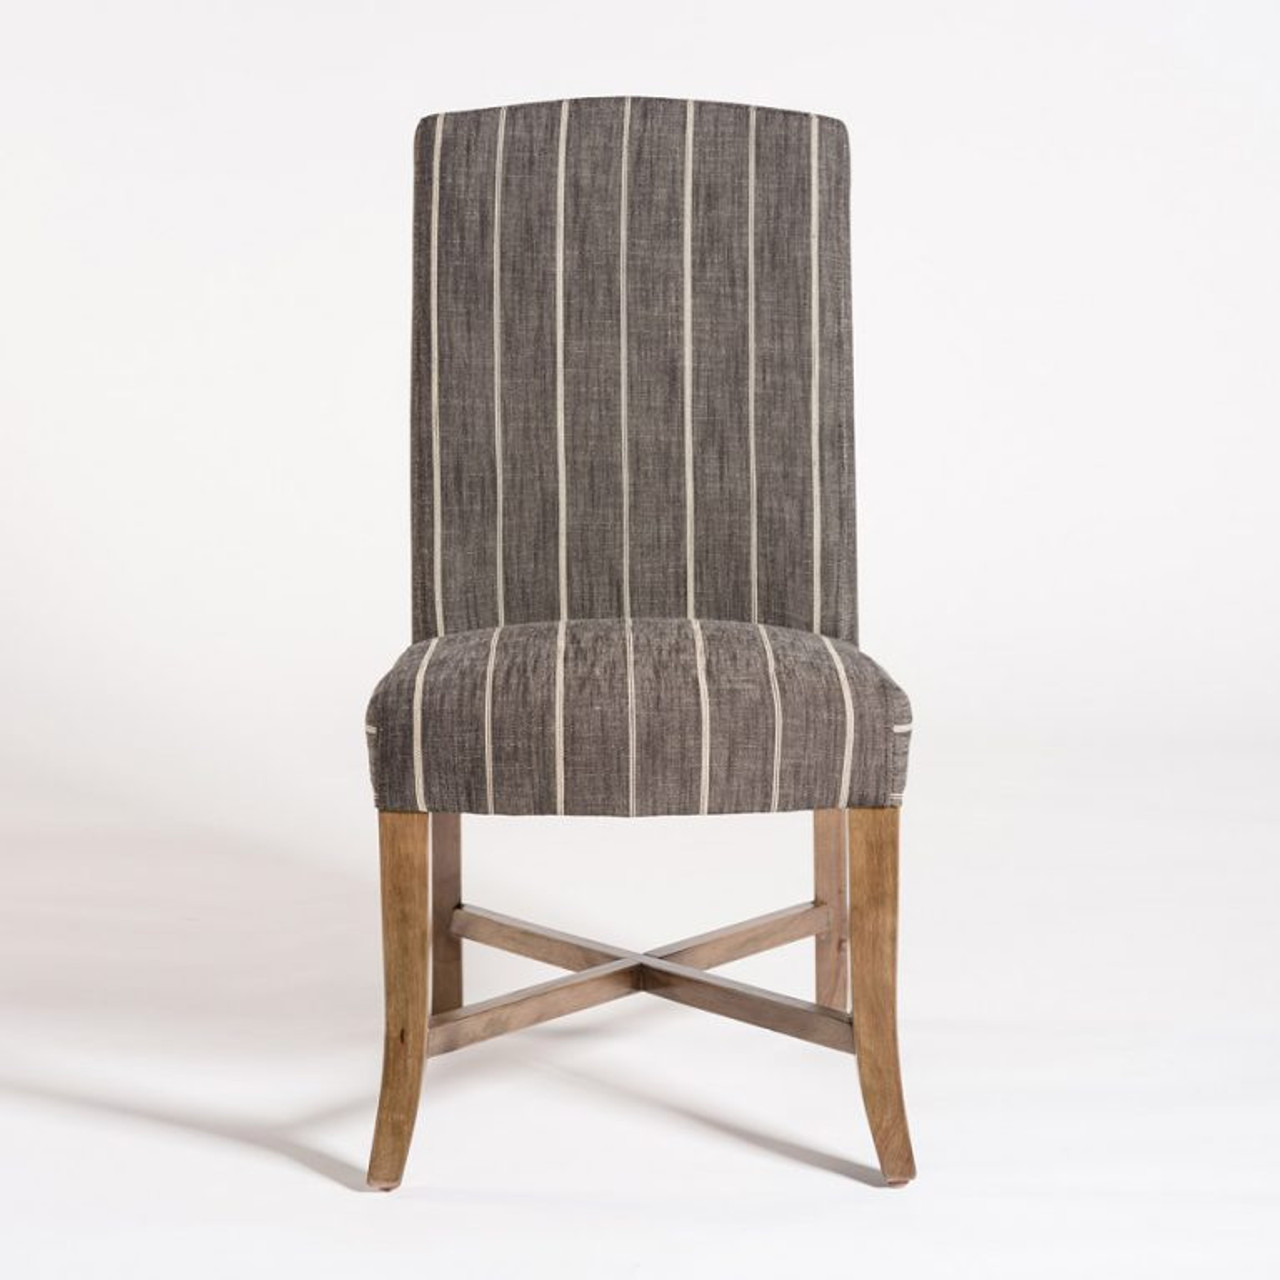 Groovy Mercer Dining Chair Lamtechconsult Wood Chair Design Ideas Lamtechconsultcom